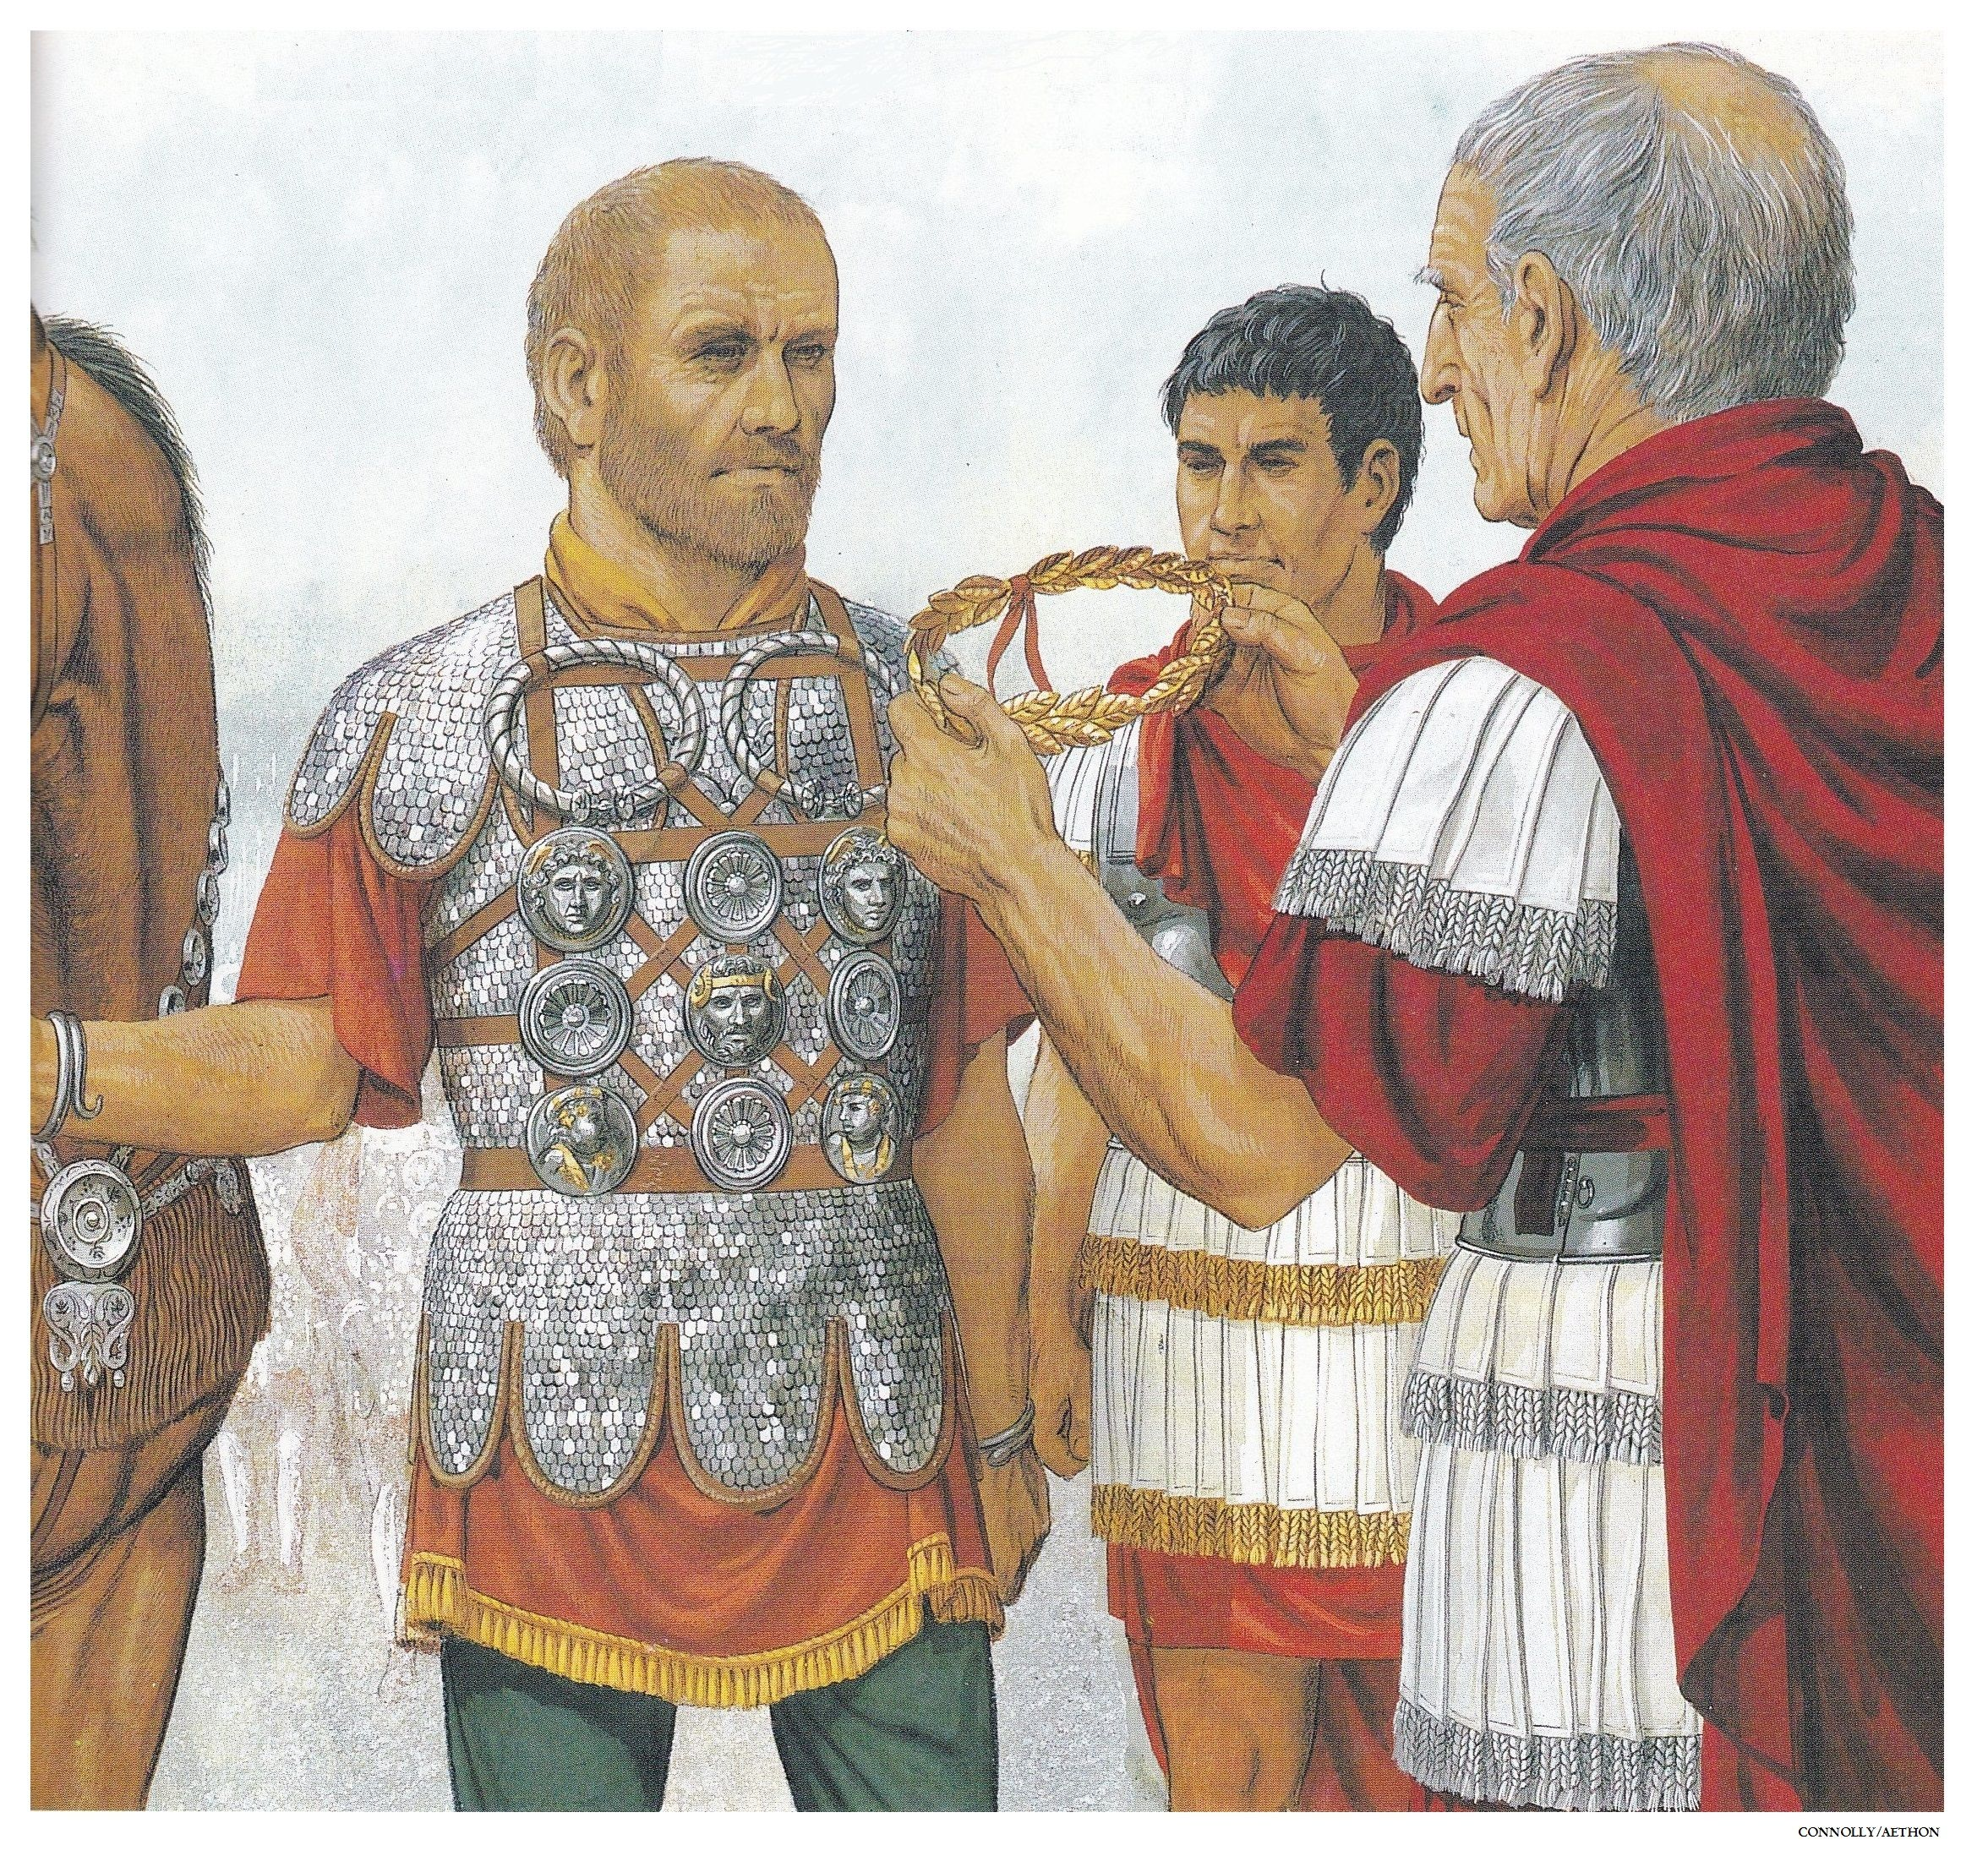 The Roman soldier & cavalry officer, Tiberius Claudius Maximus, being decorated by Trajan, after serving for nearly thirty years. (1st century AD.) (Peter Connolly/Dacian Wars/user: Aethon)